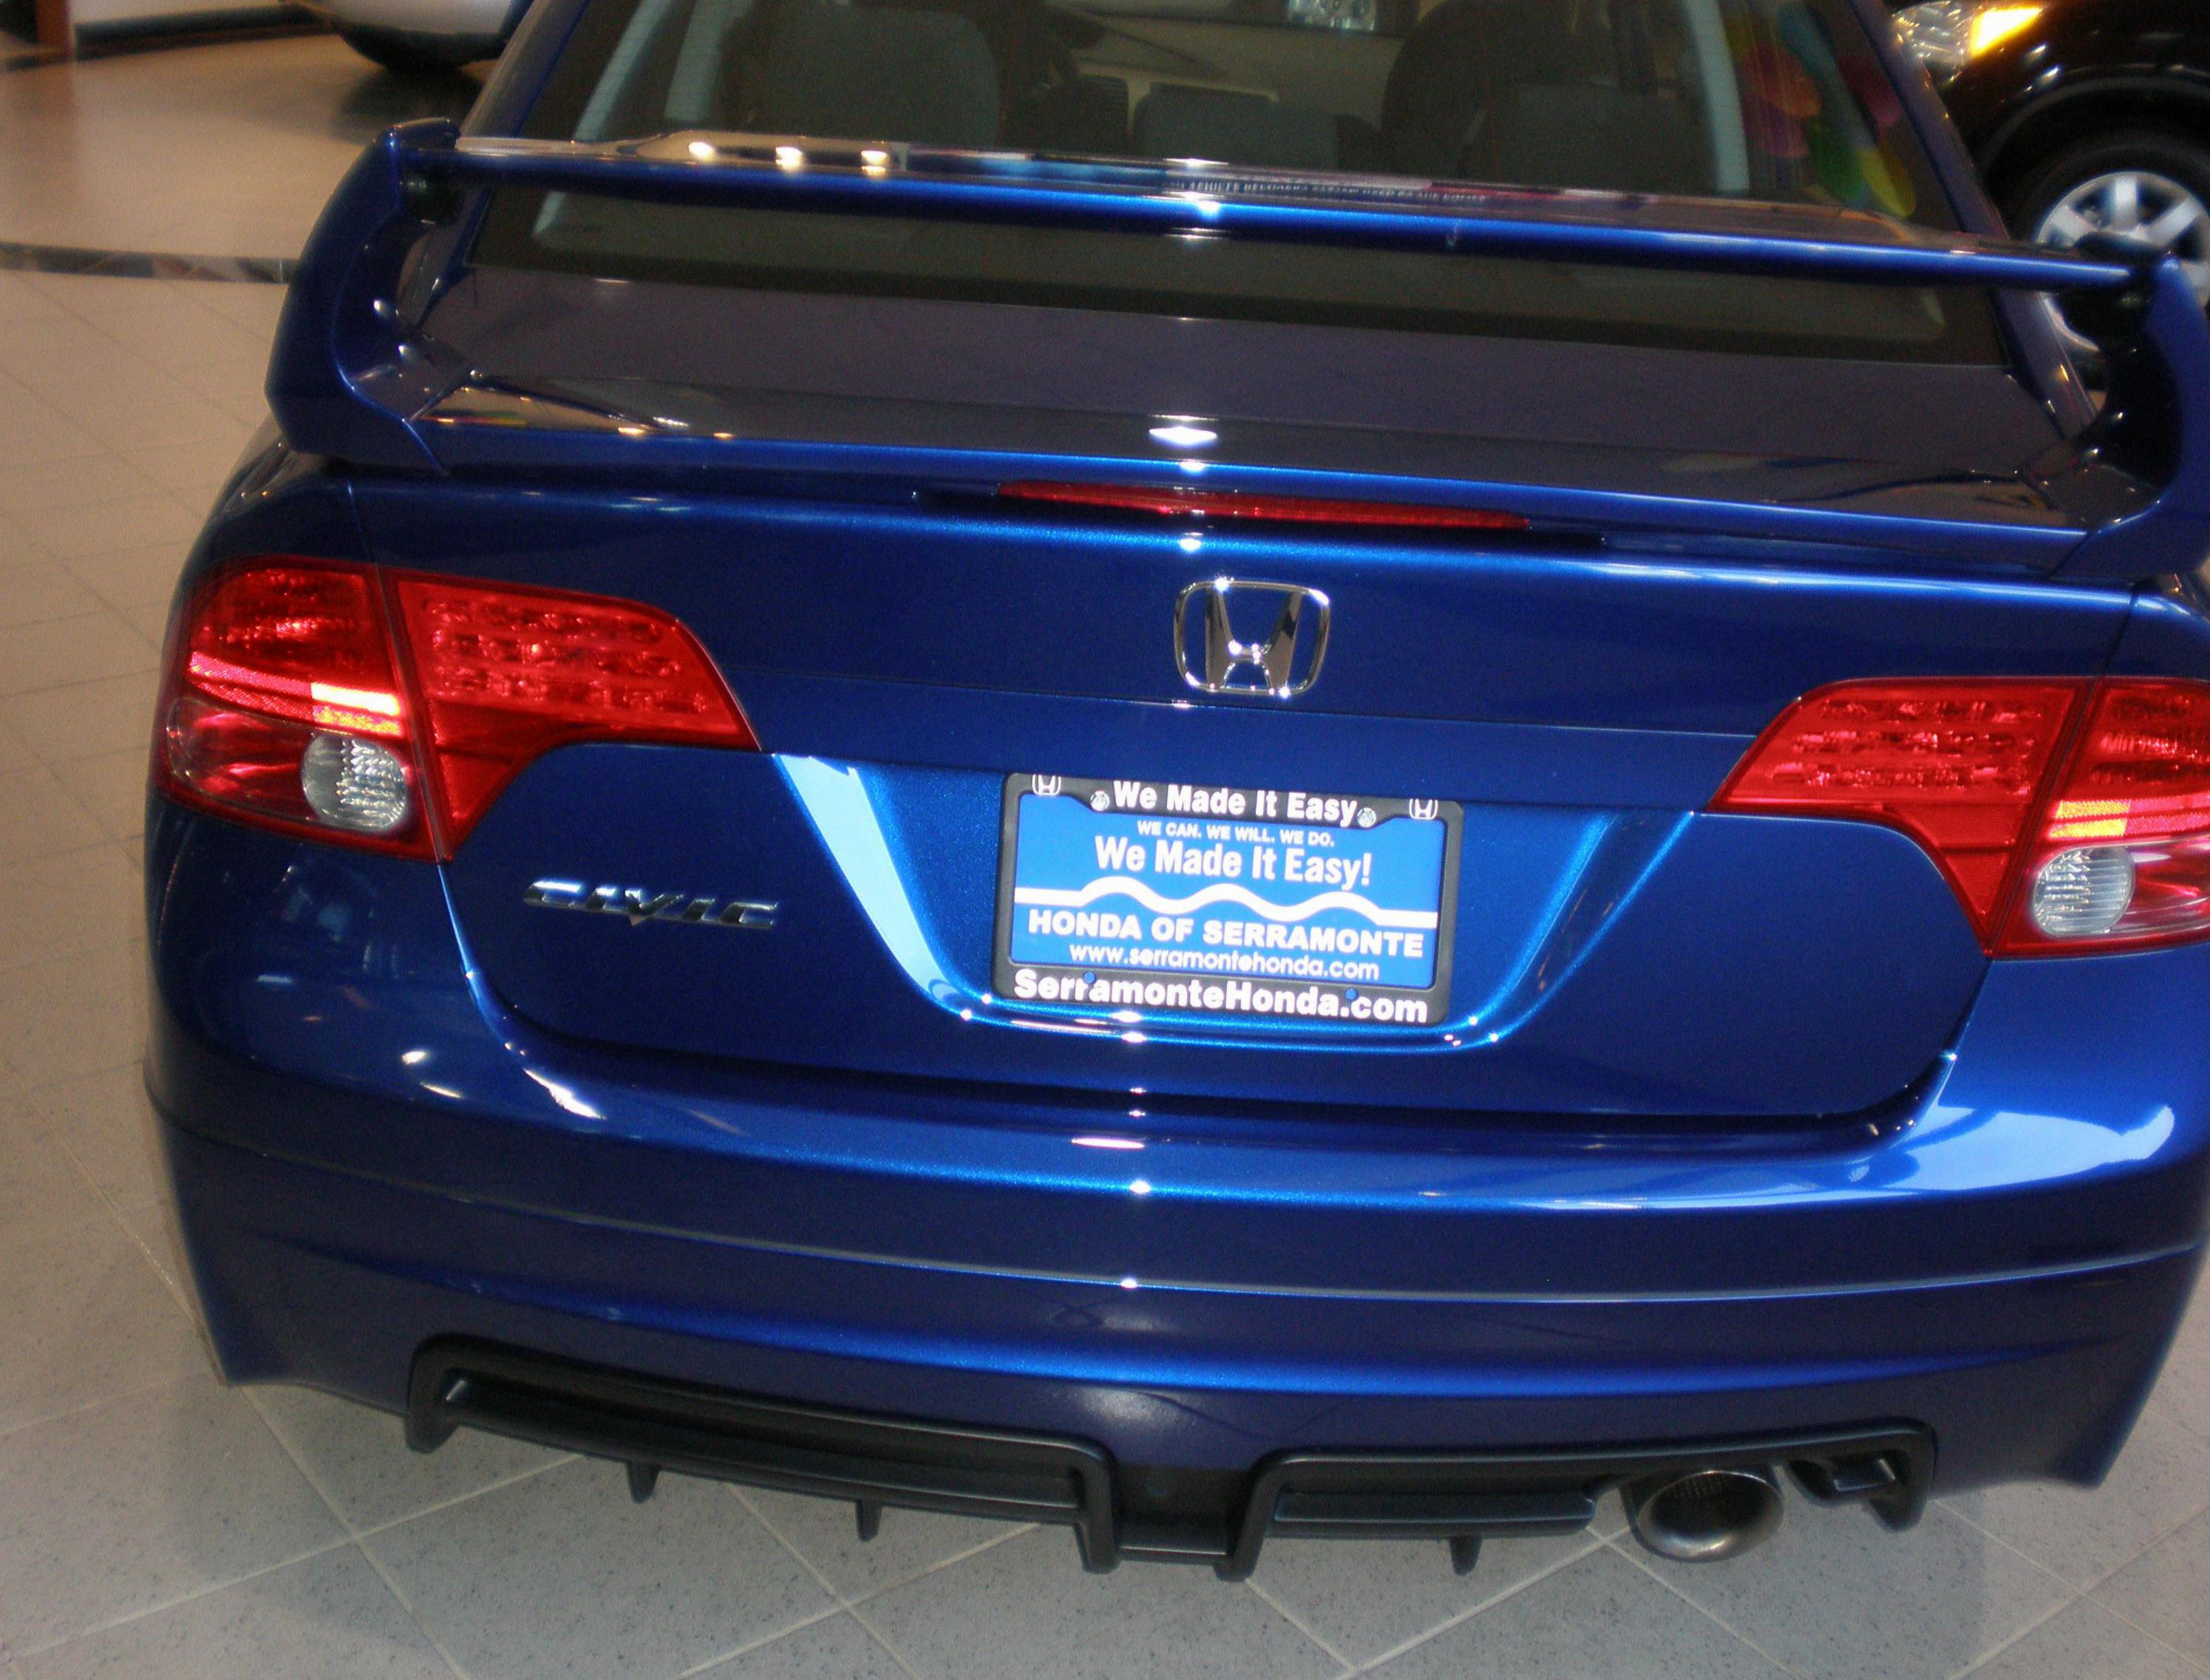 Civic Si Sedan Honda price 2011